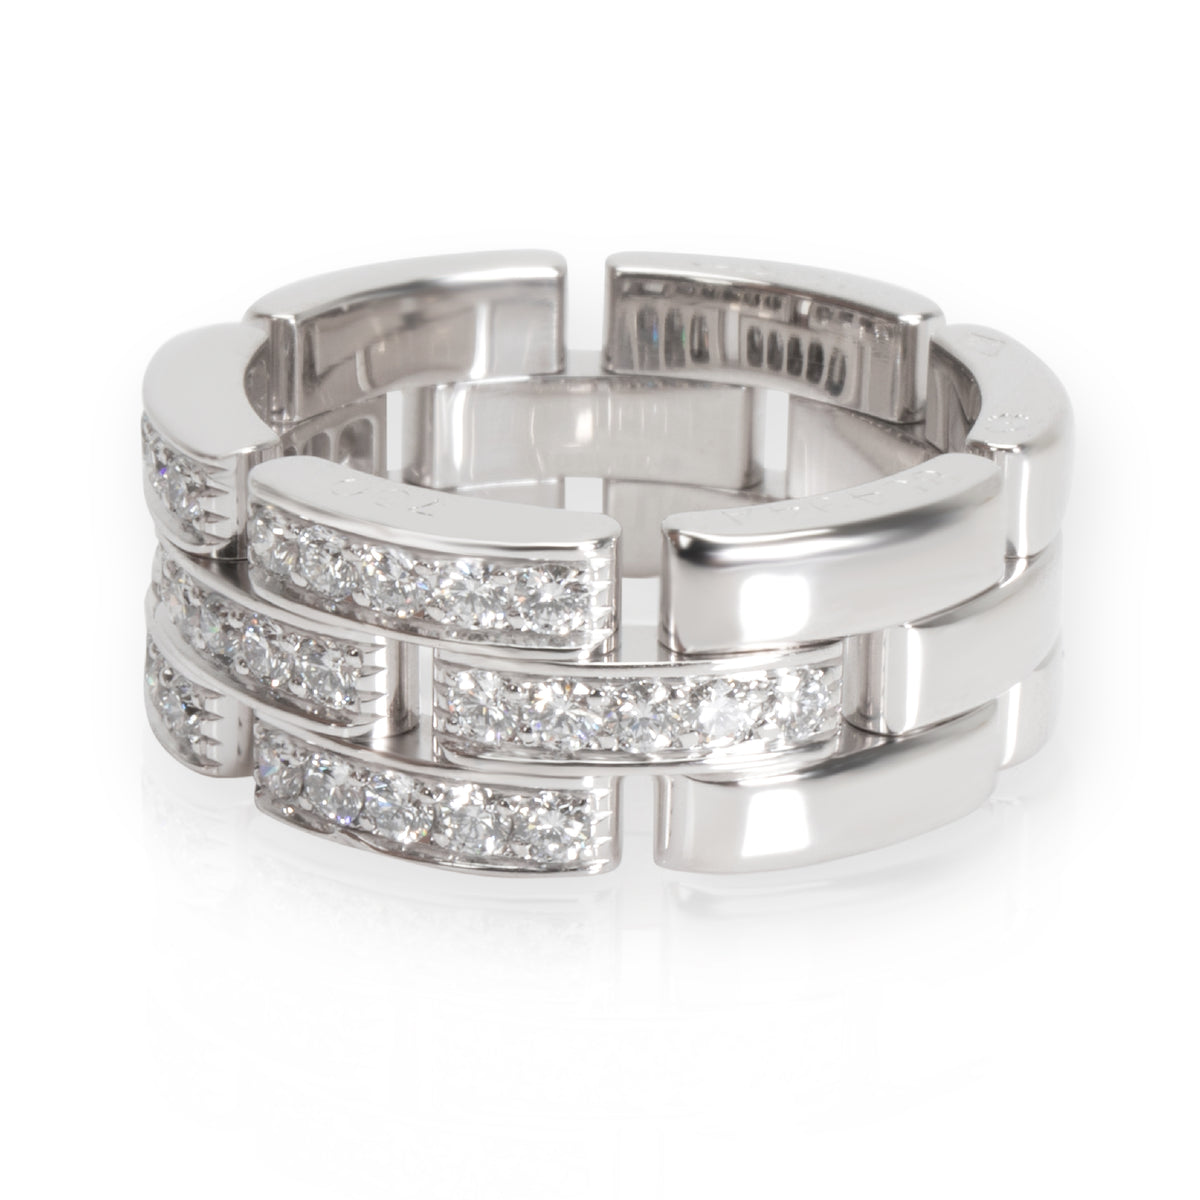 Cartier Maillon Panthere Diamond Band in 18K White Gold 0.5 CTW